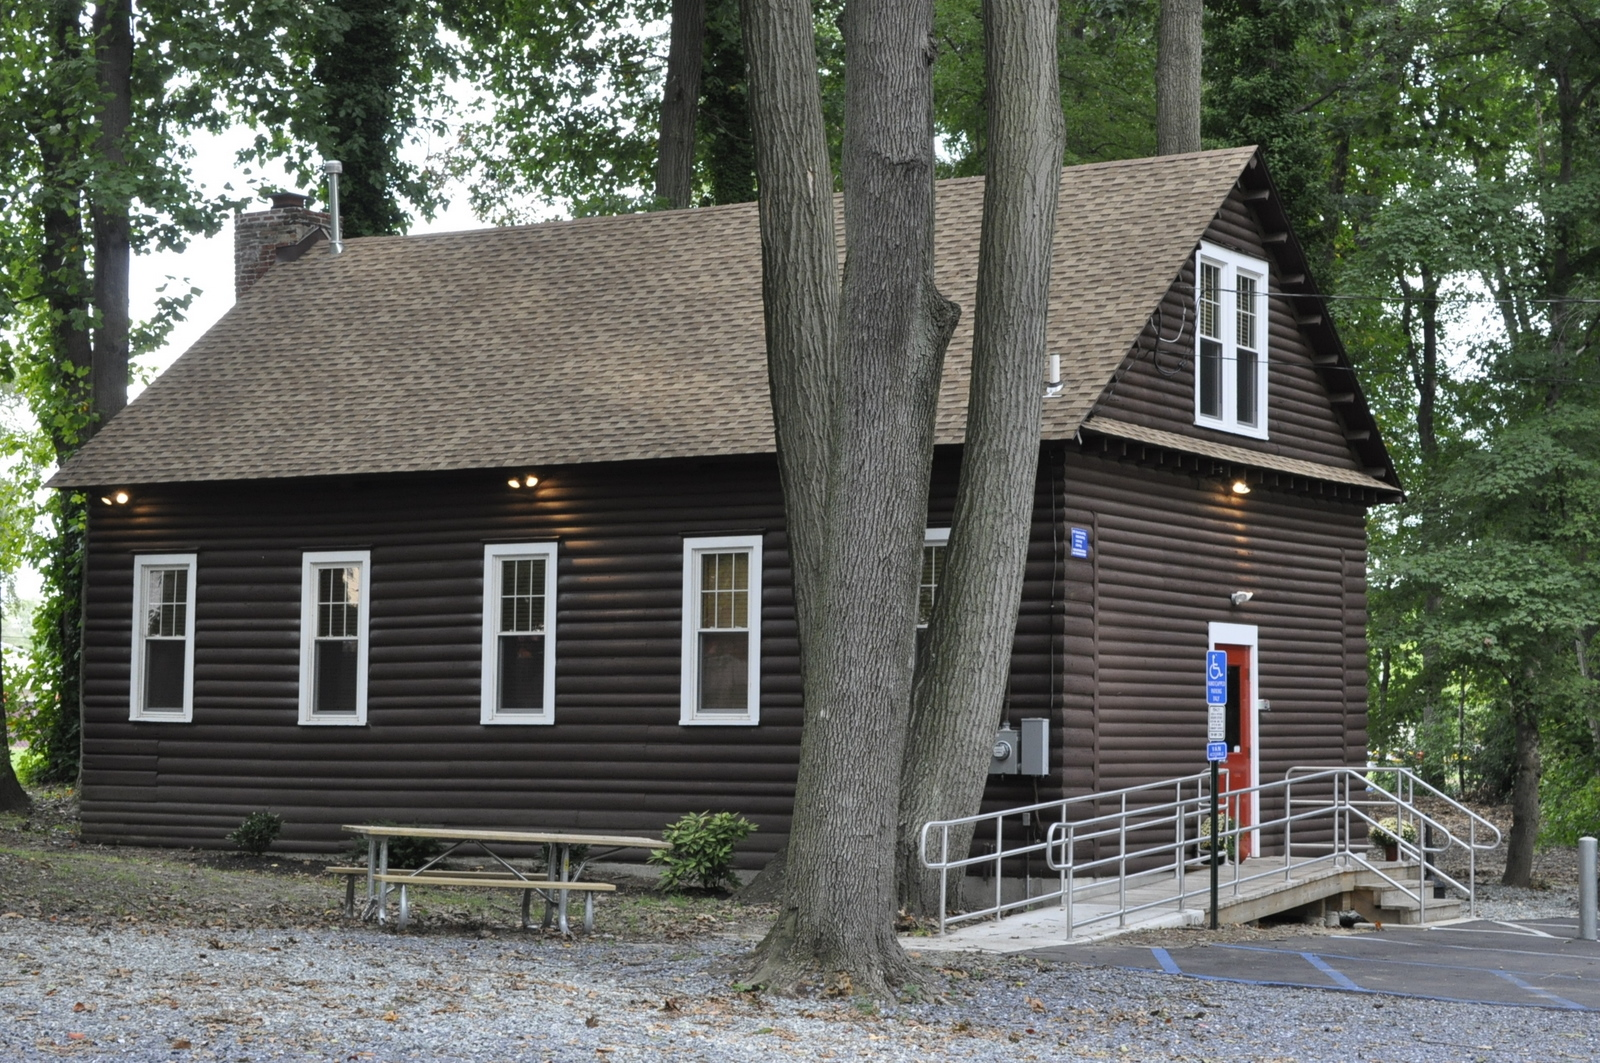 Haddon Heights Community Center Cabin Hall Rentals In Haddon